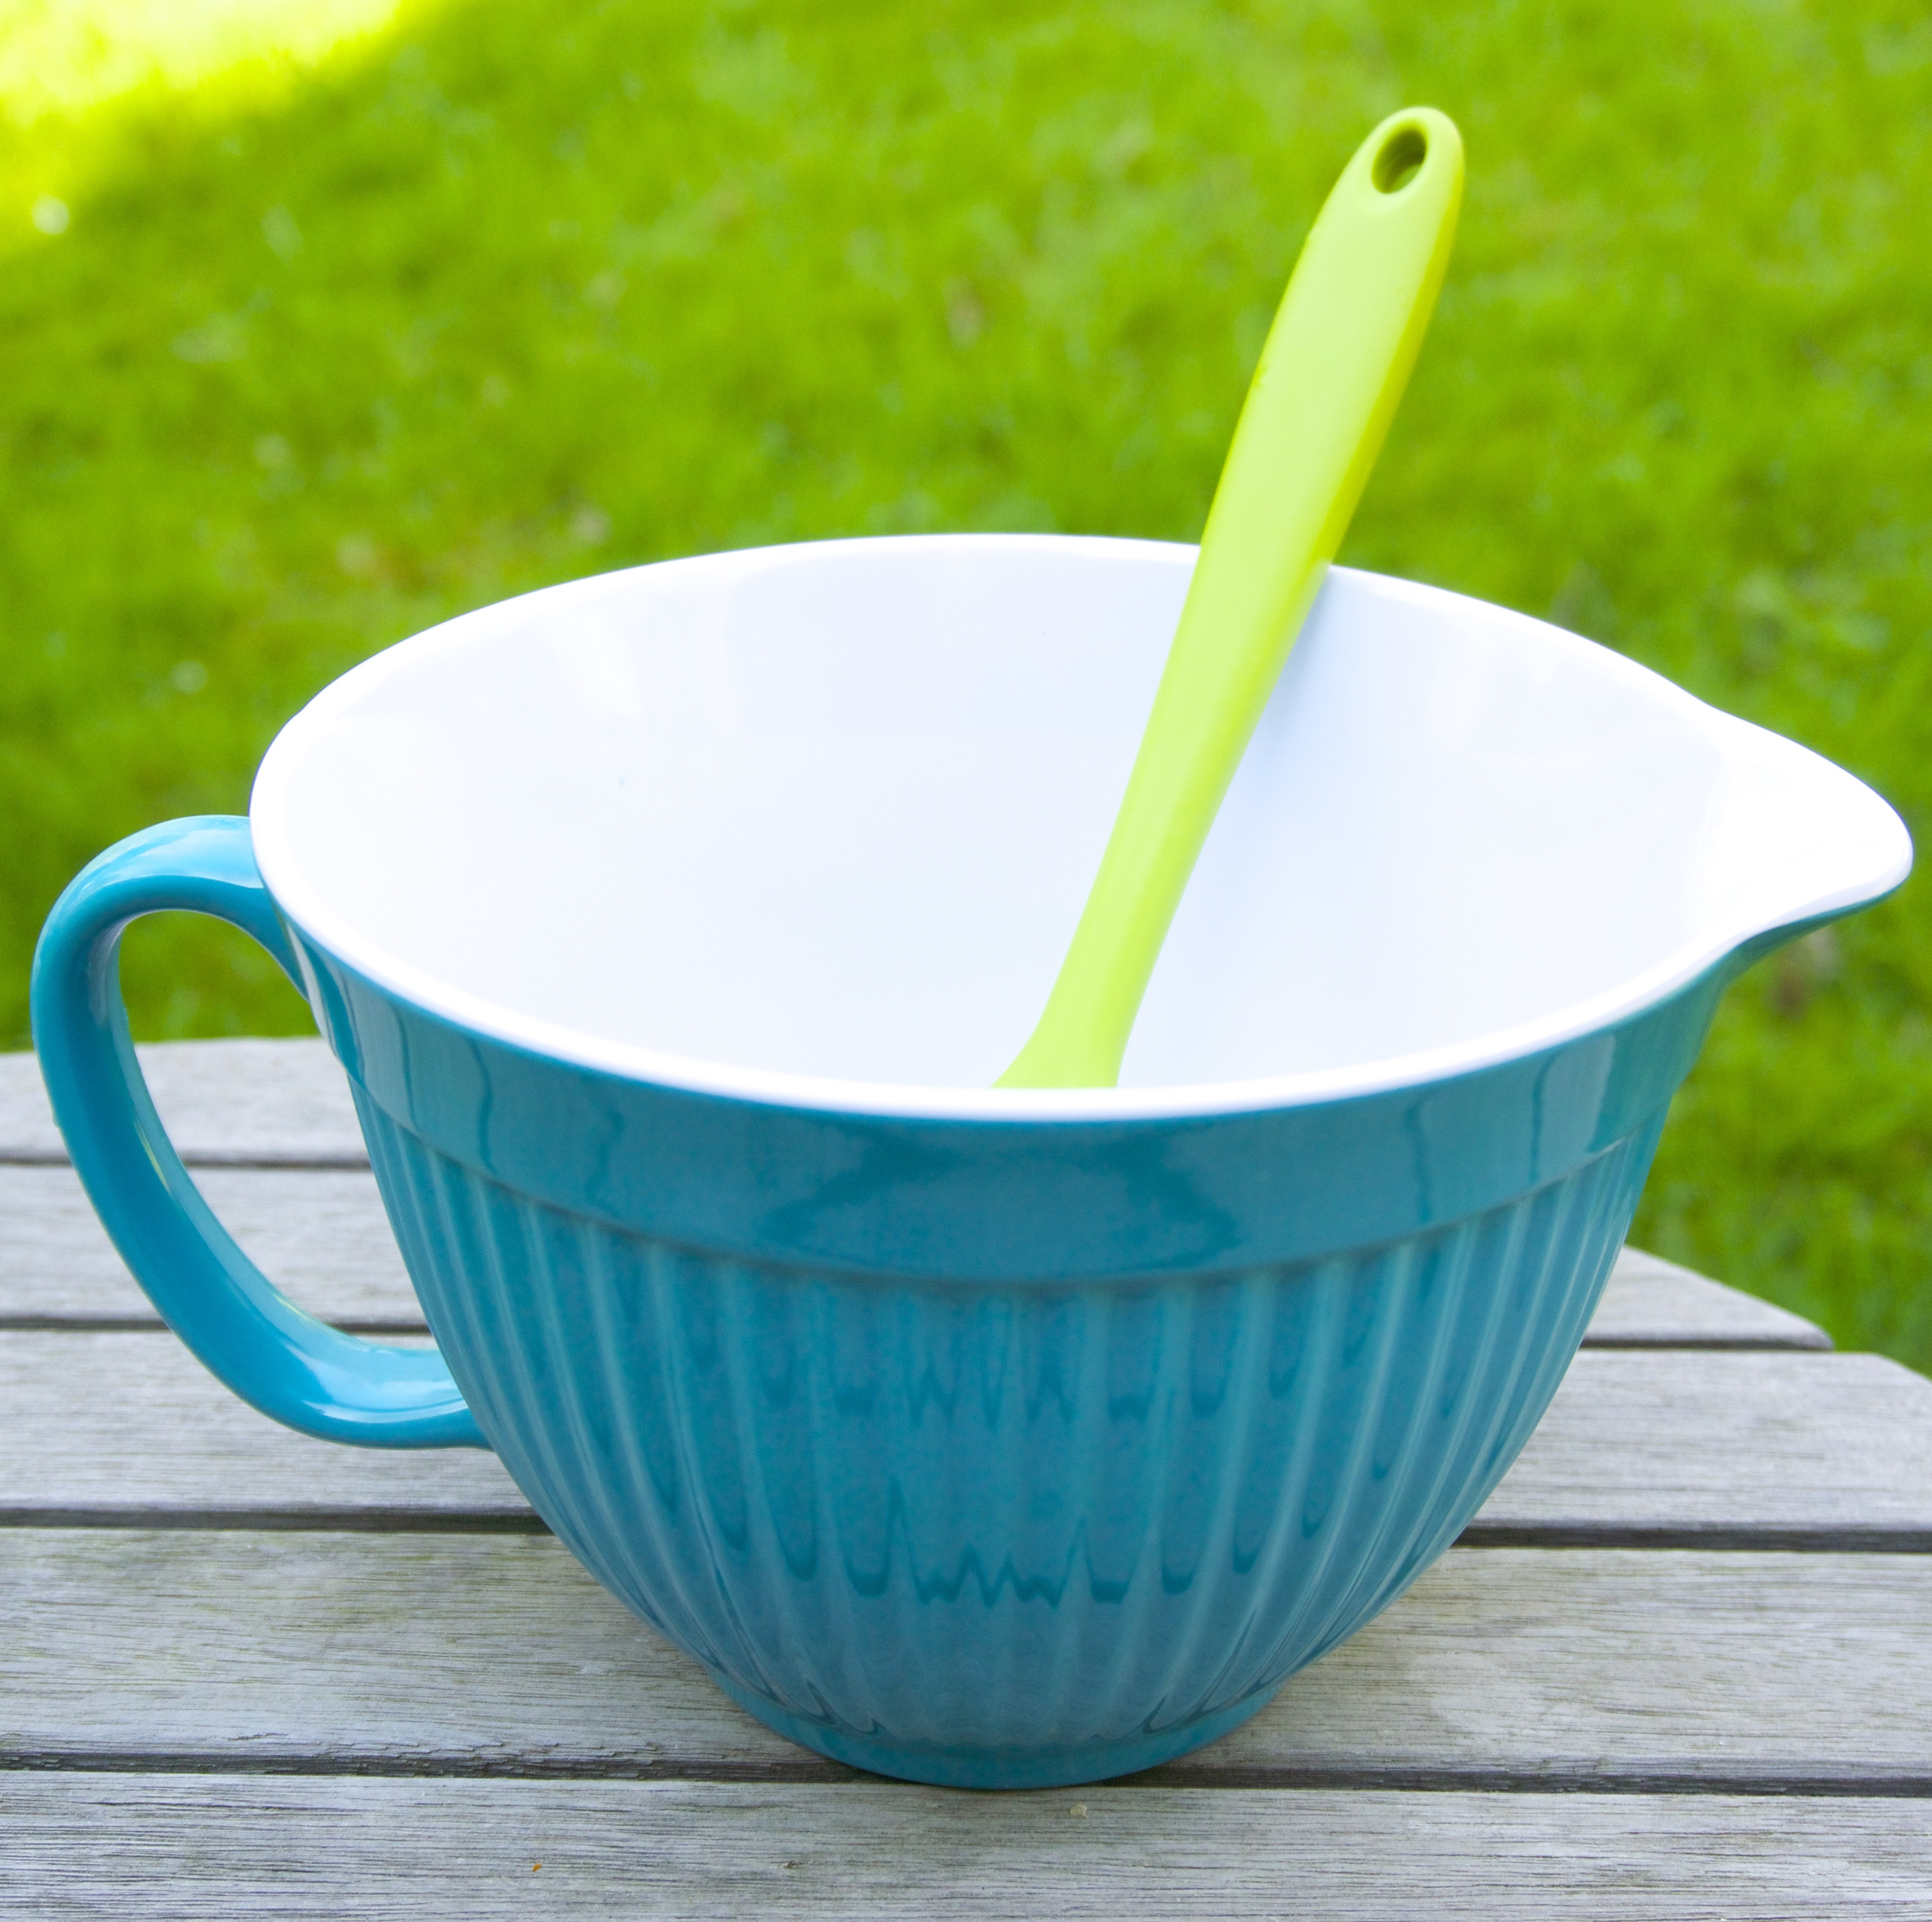 Melamine Mixing Bowl - Vibrant Home     Donated for charity event - chose to  review